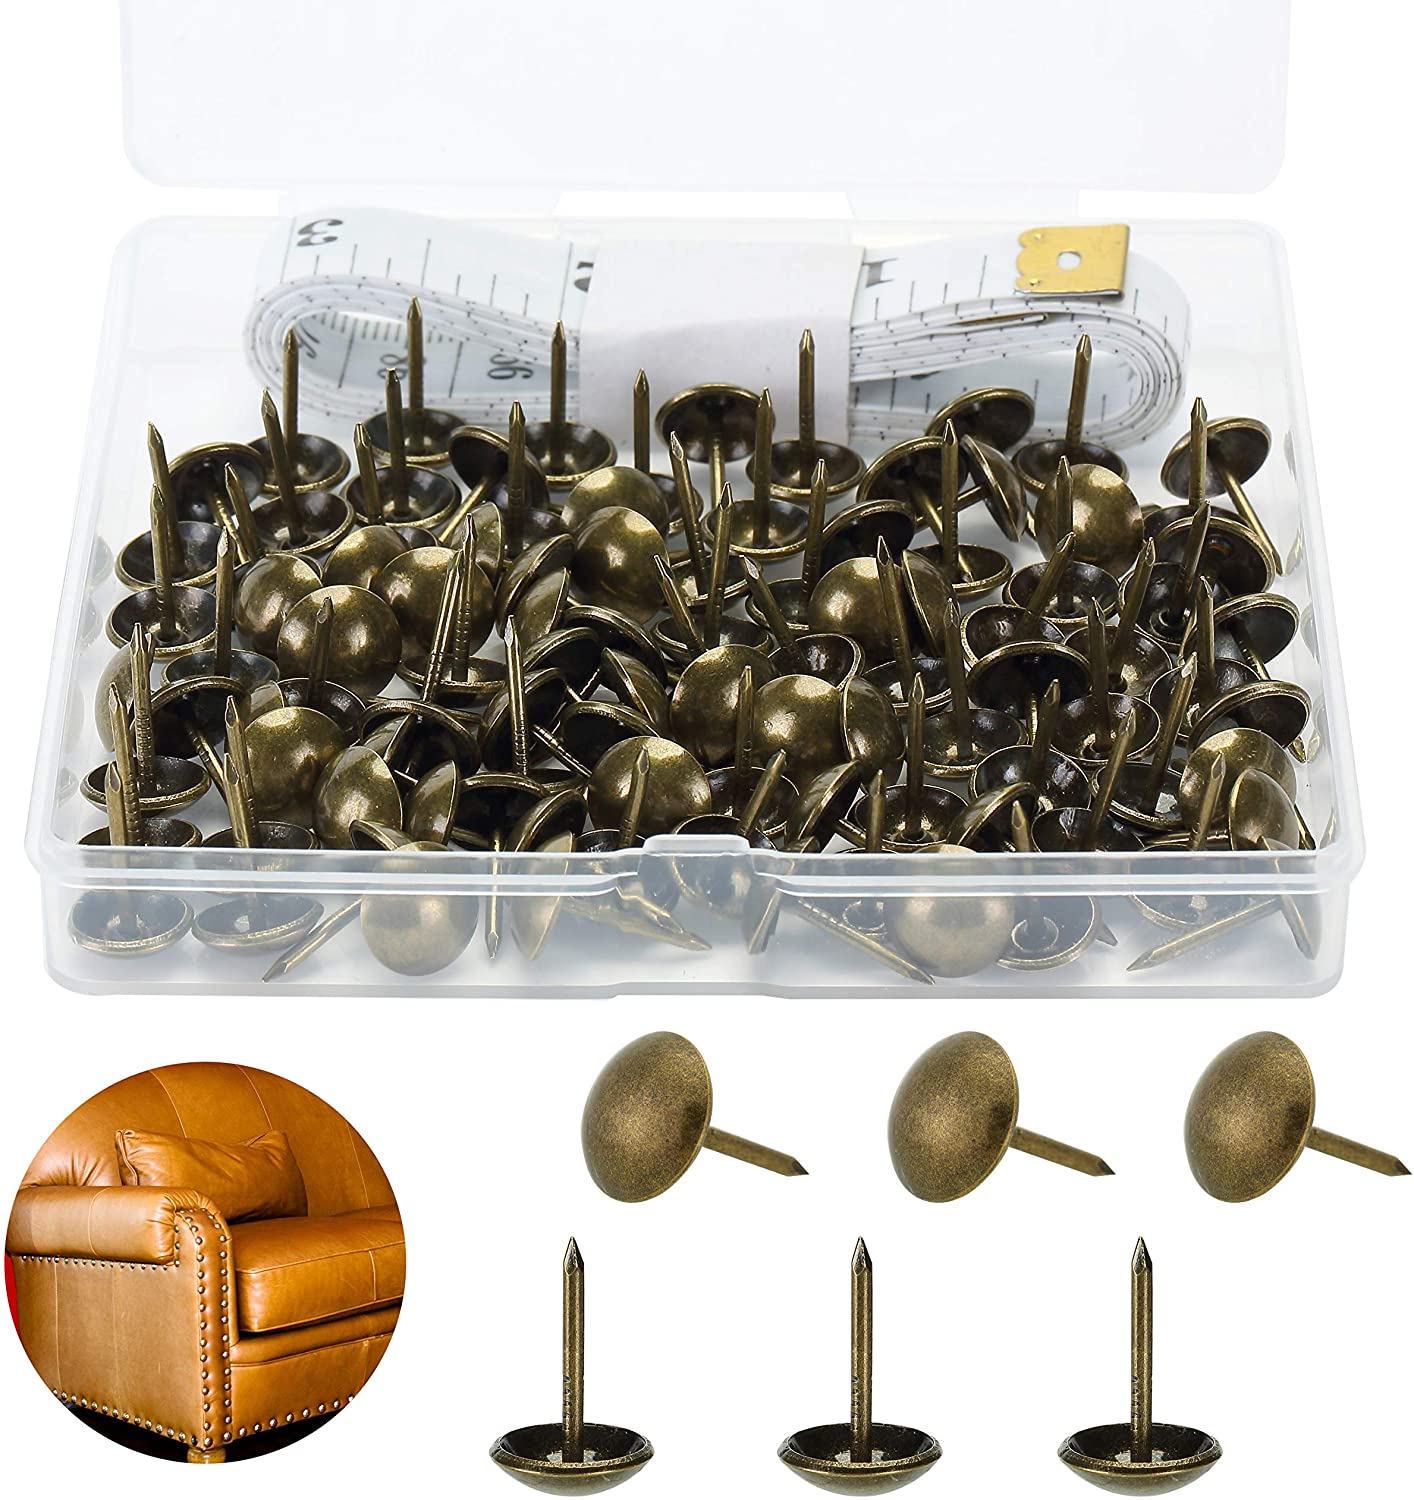 Mr. Pen- Upholstery Tacks, 100 Pack, Furniture Tacks, Decorative Nail Heads, Upholstery Tacks for Furniture, Decorative Tacks, Upholstery Pins, Upholstery Nails, Antique Furniture Brass Tacks